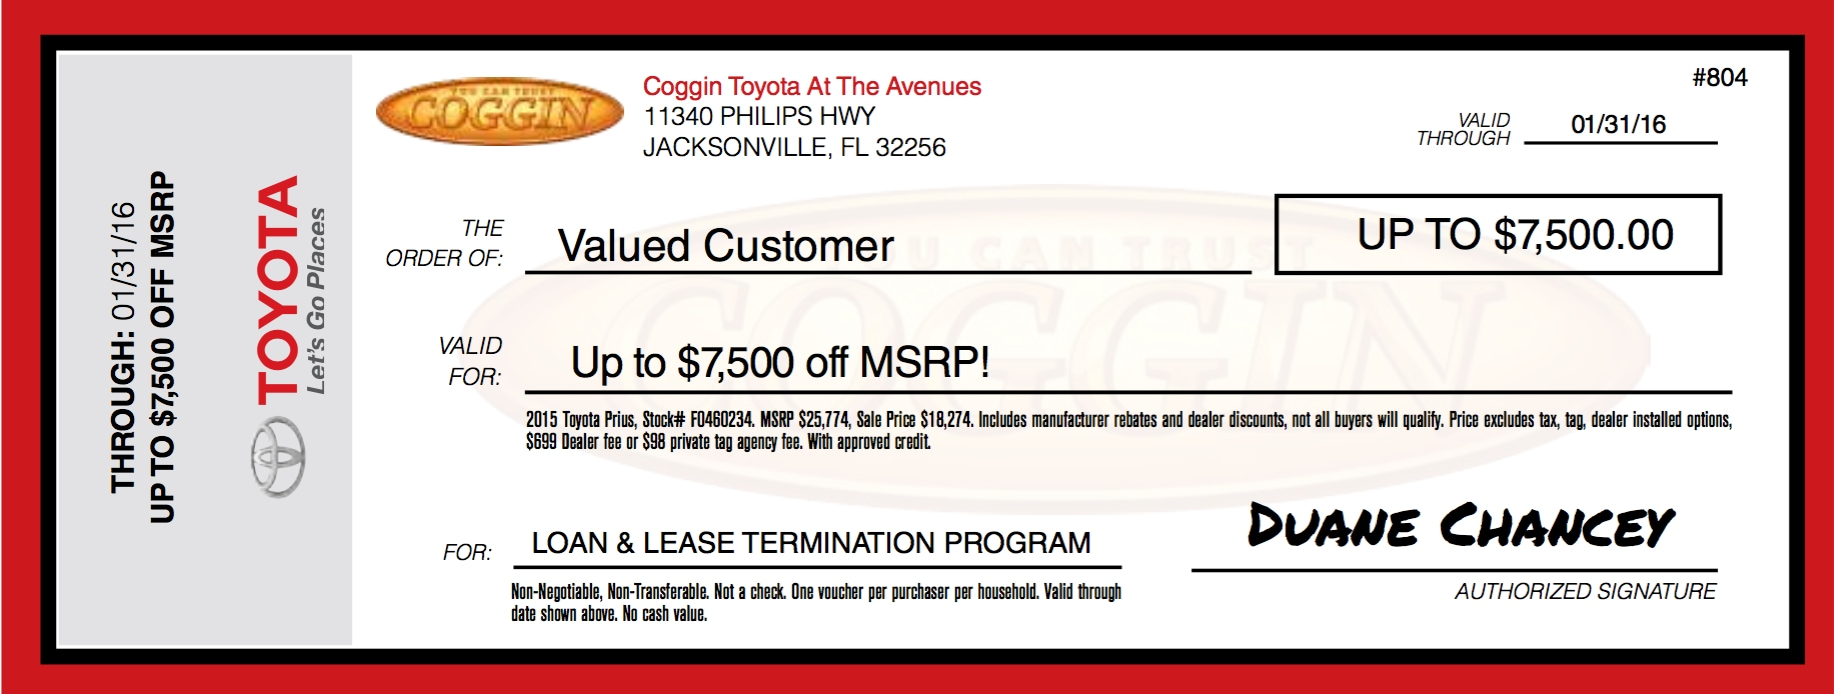 Loan and Lease $7500 off MSRP Voucher